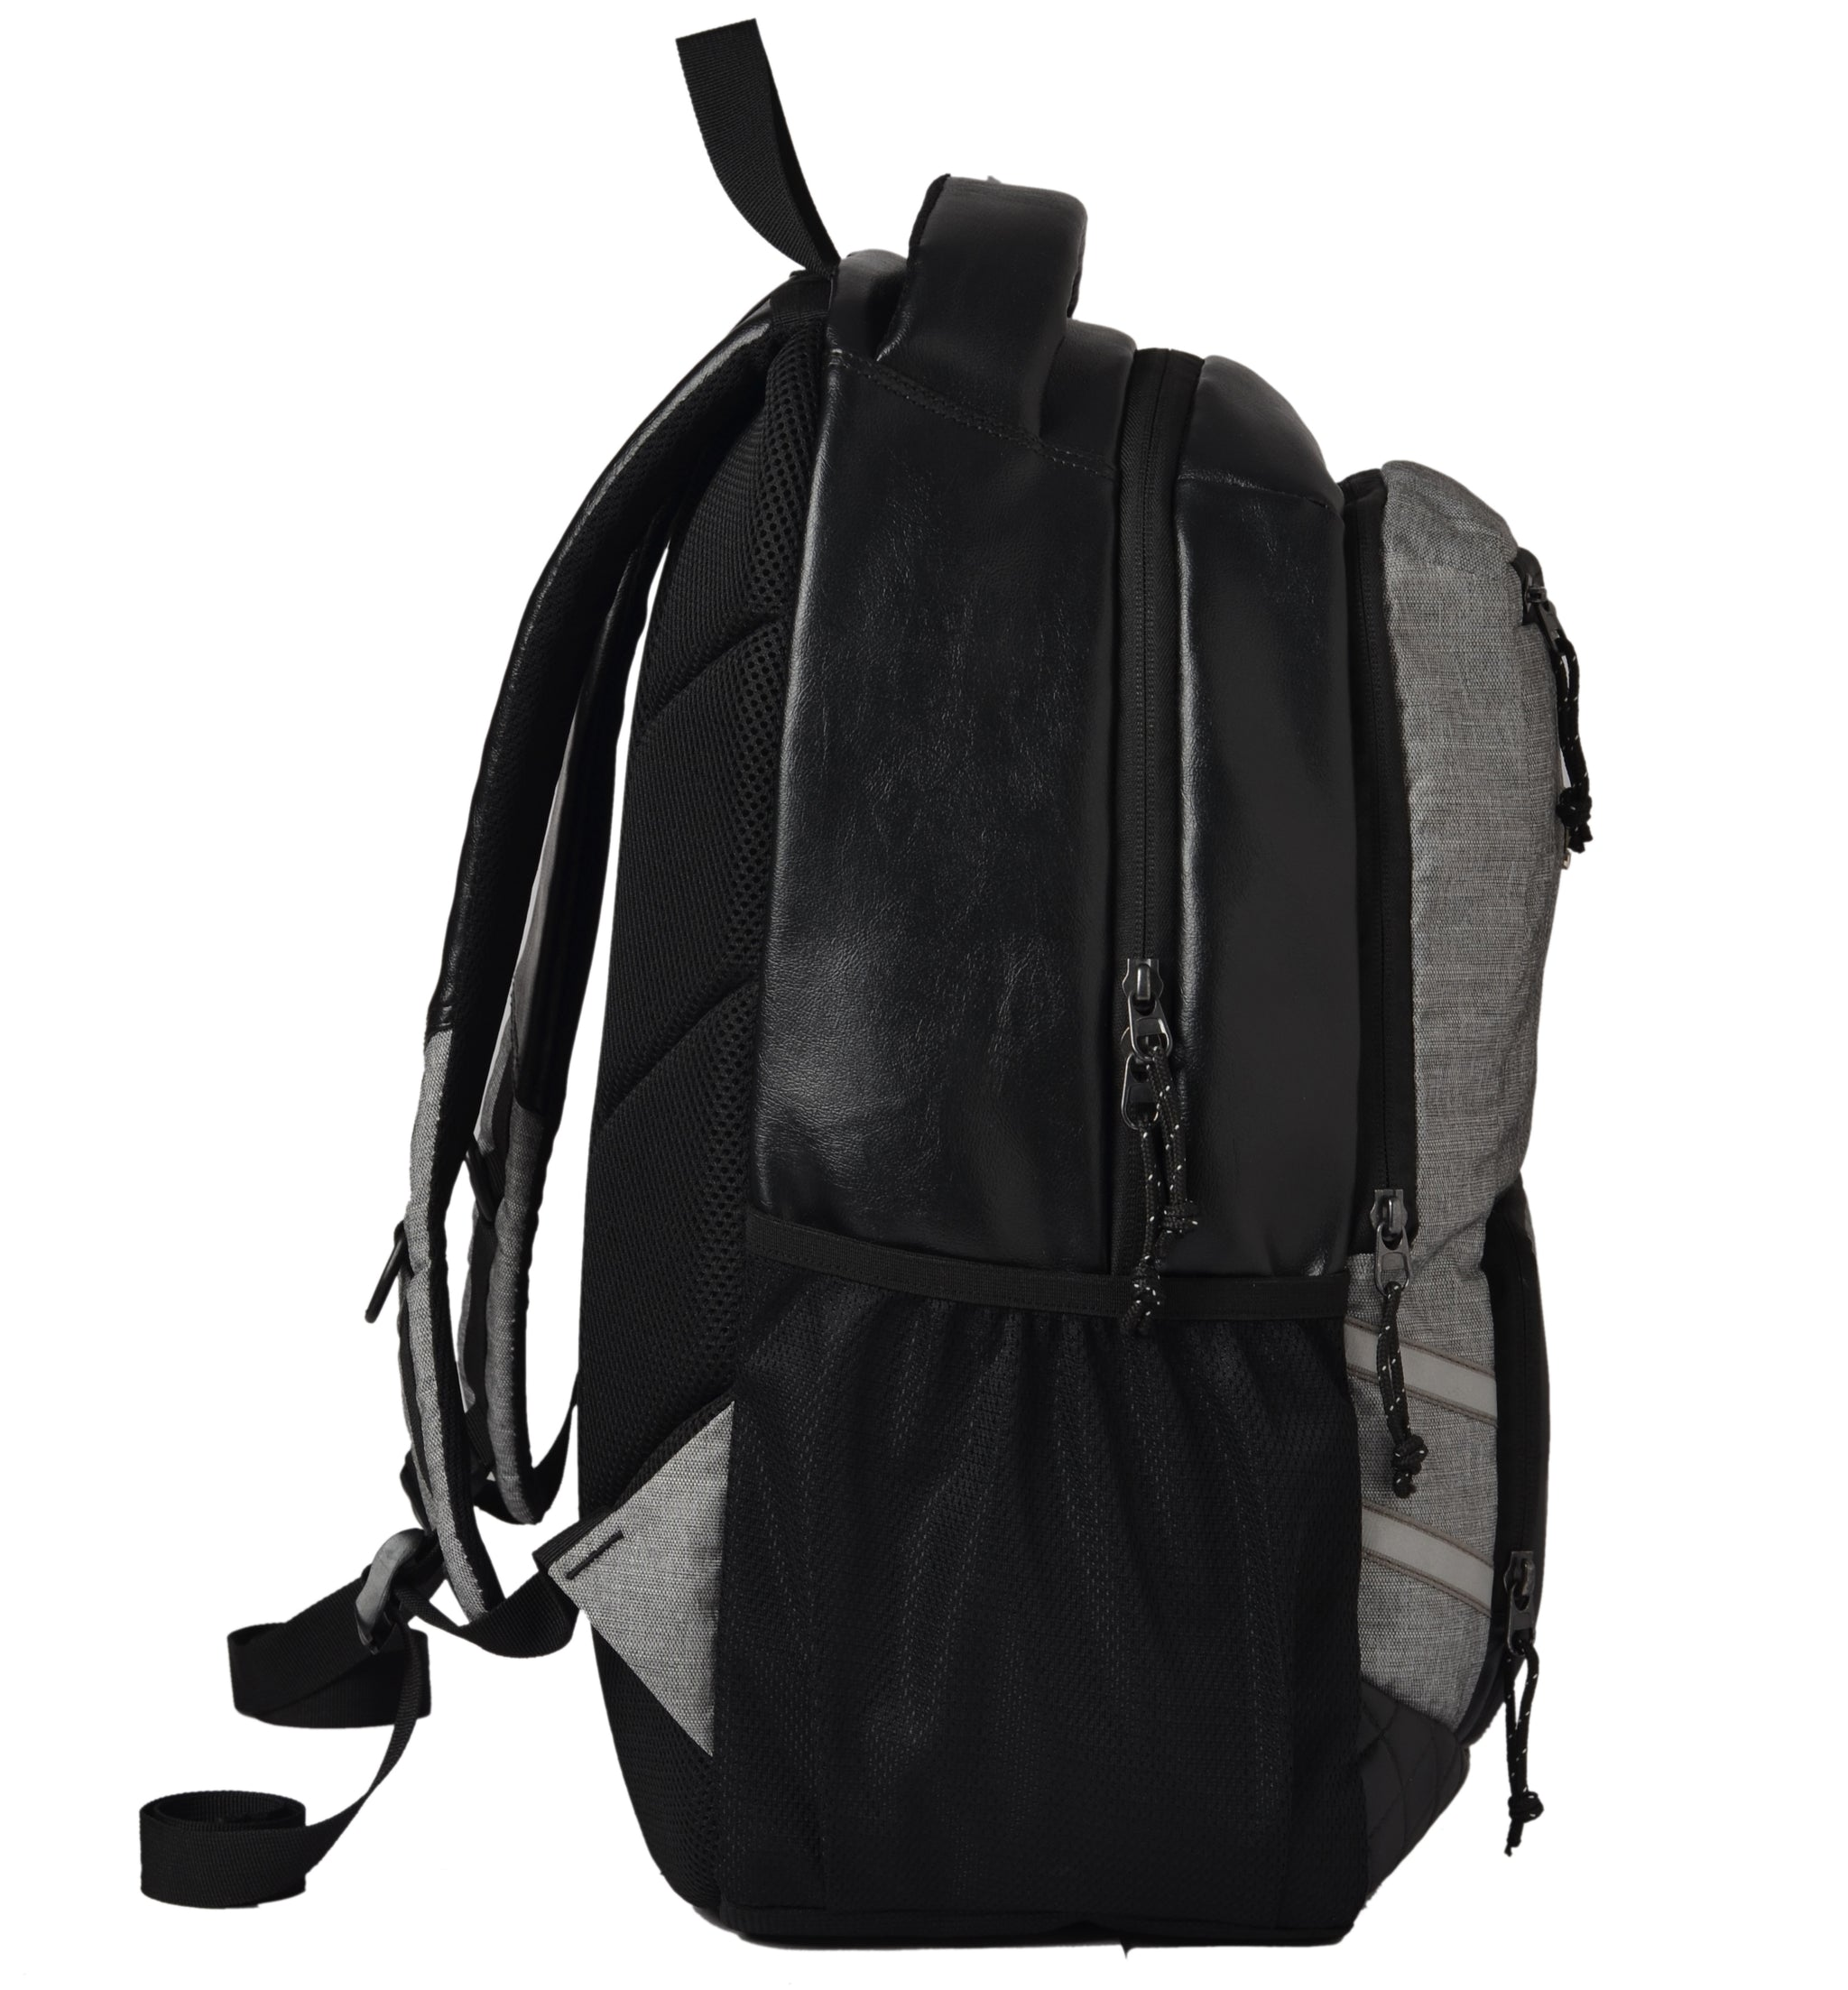 F Gear Intellect 32 Liters Laptop Backpack with Rain Cover (Black, Melange Grey)